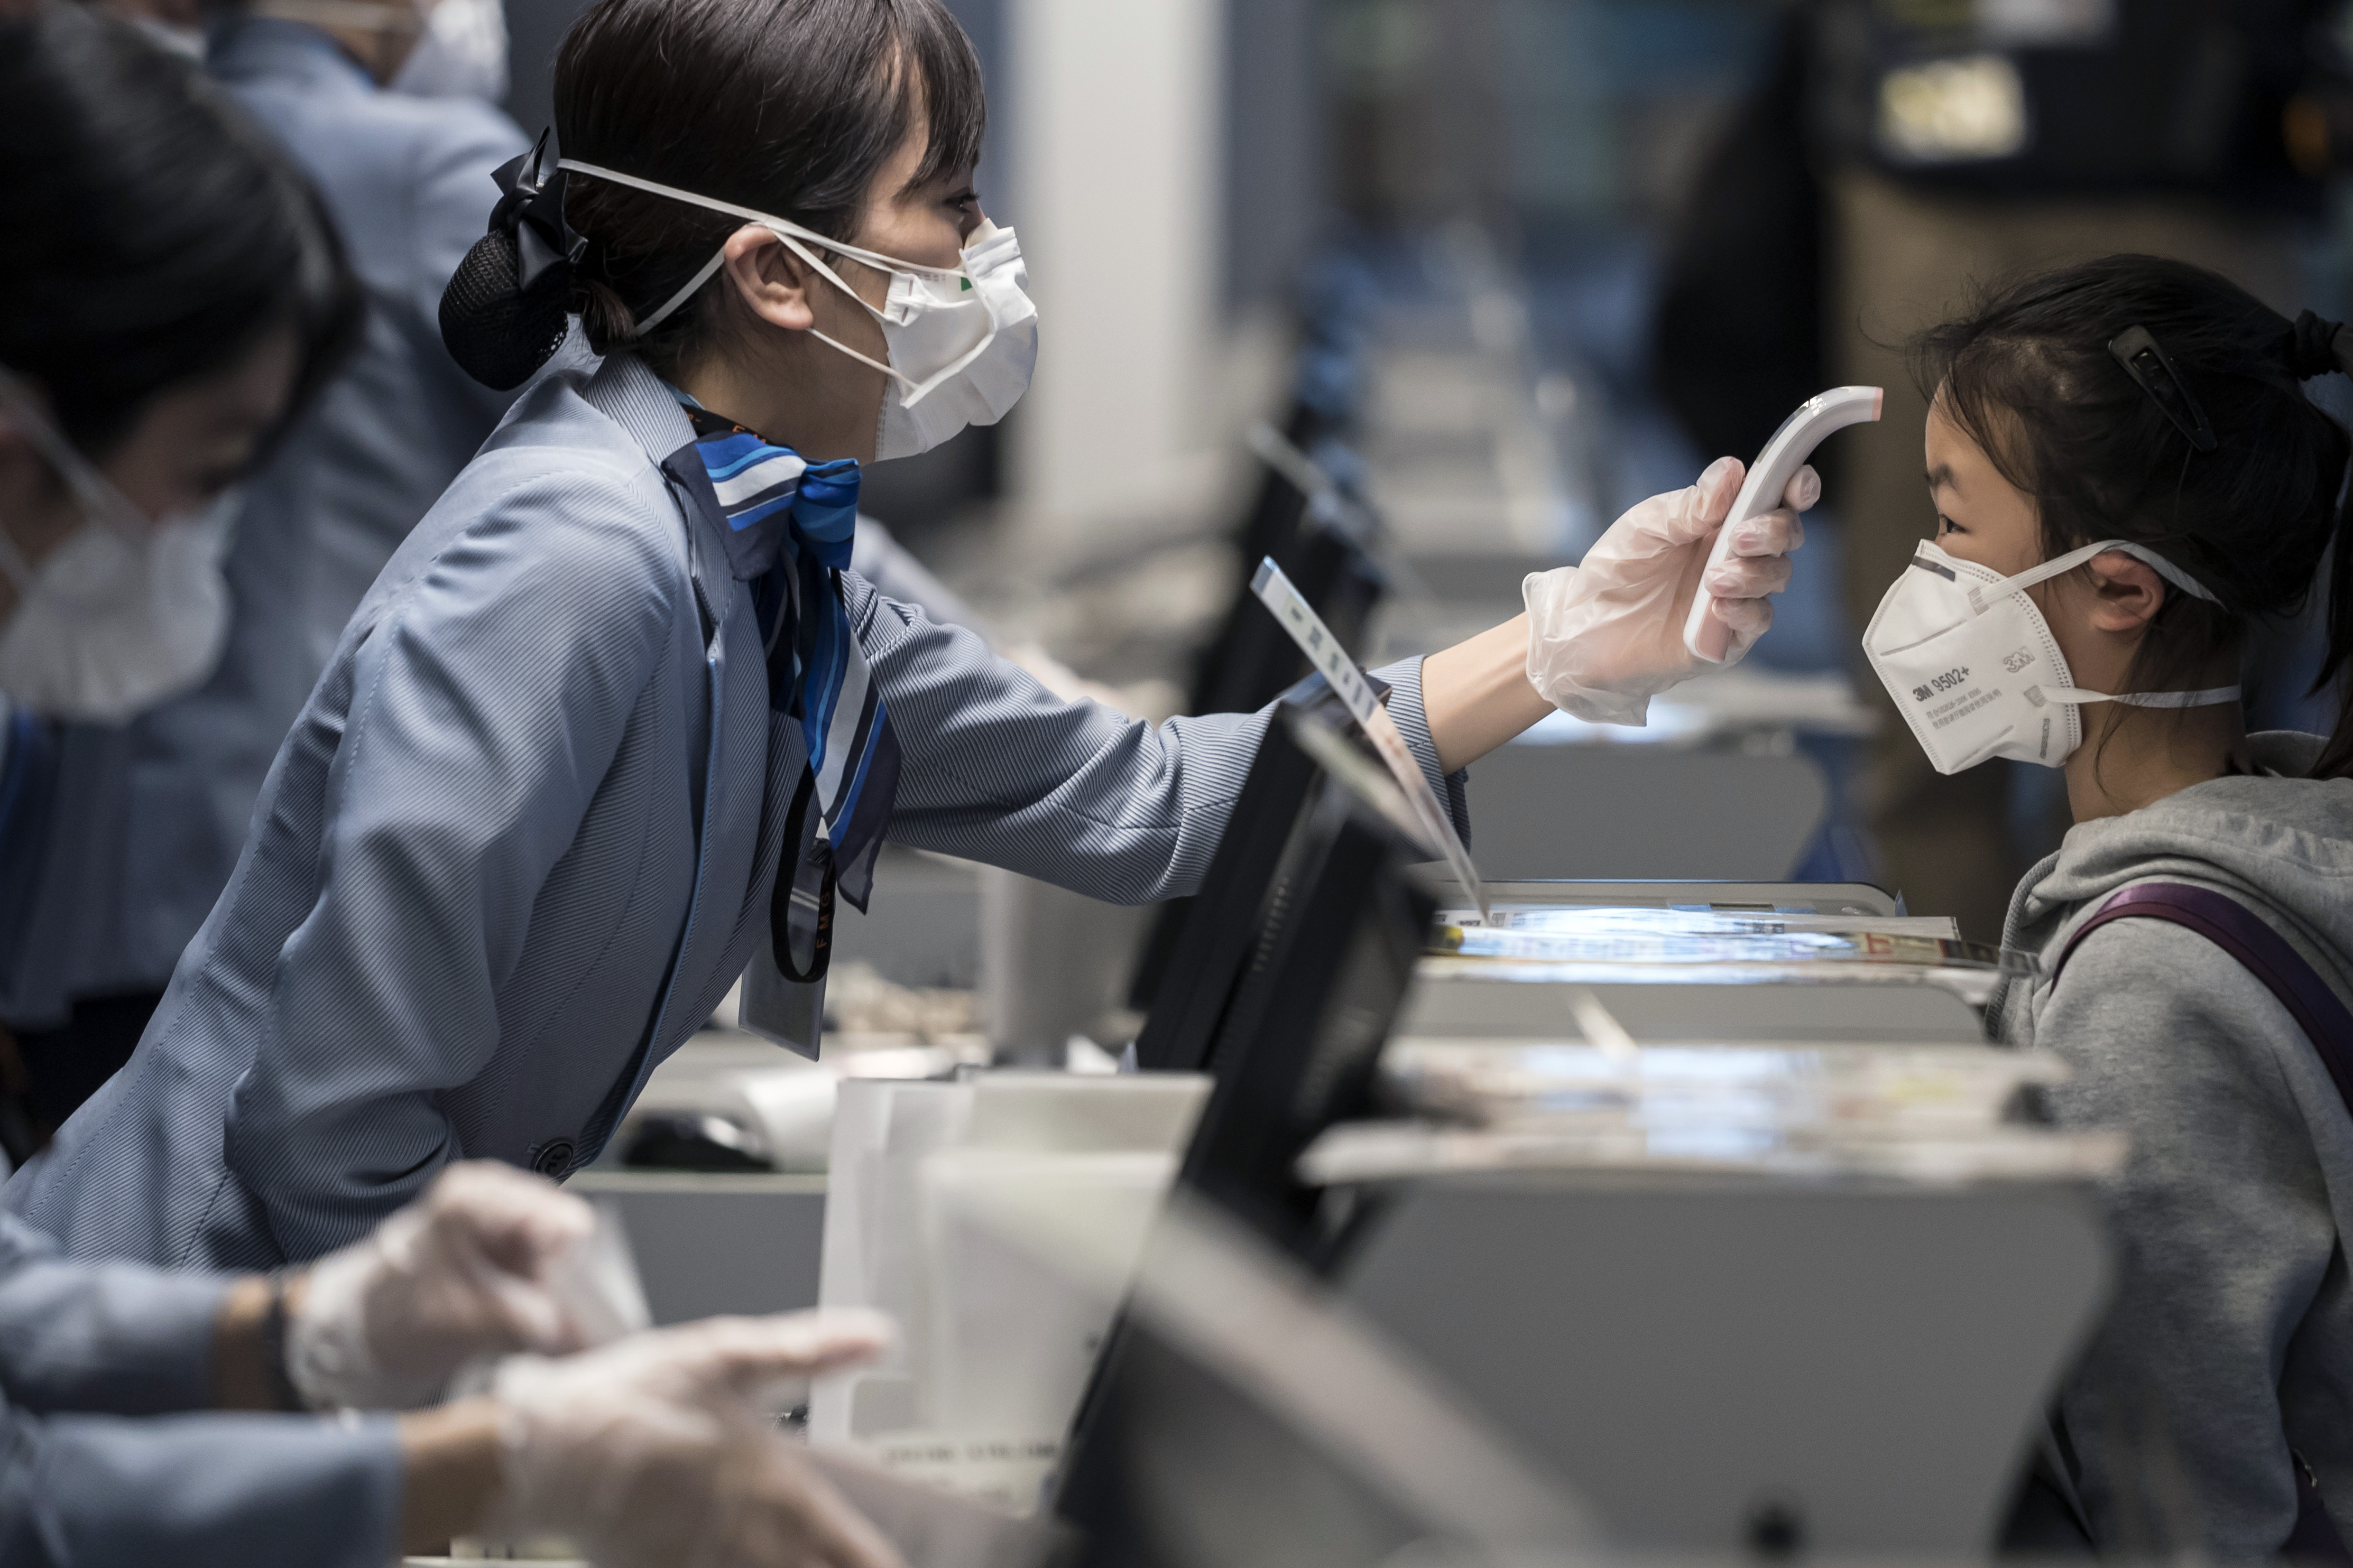 A passenger receives a temperature check at Haneda airport on January 31, 2020 in Tokyo, Japan.